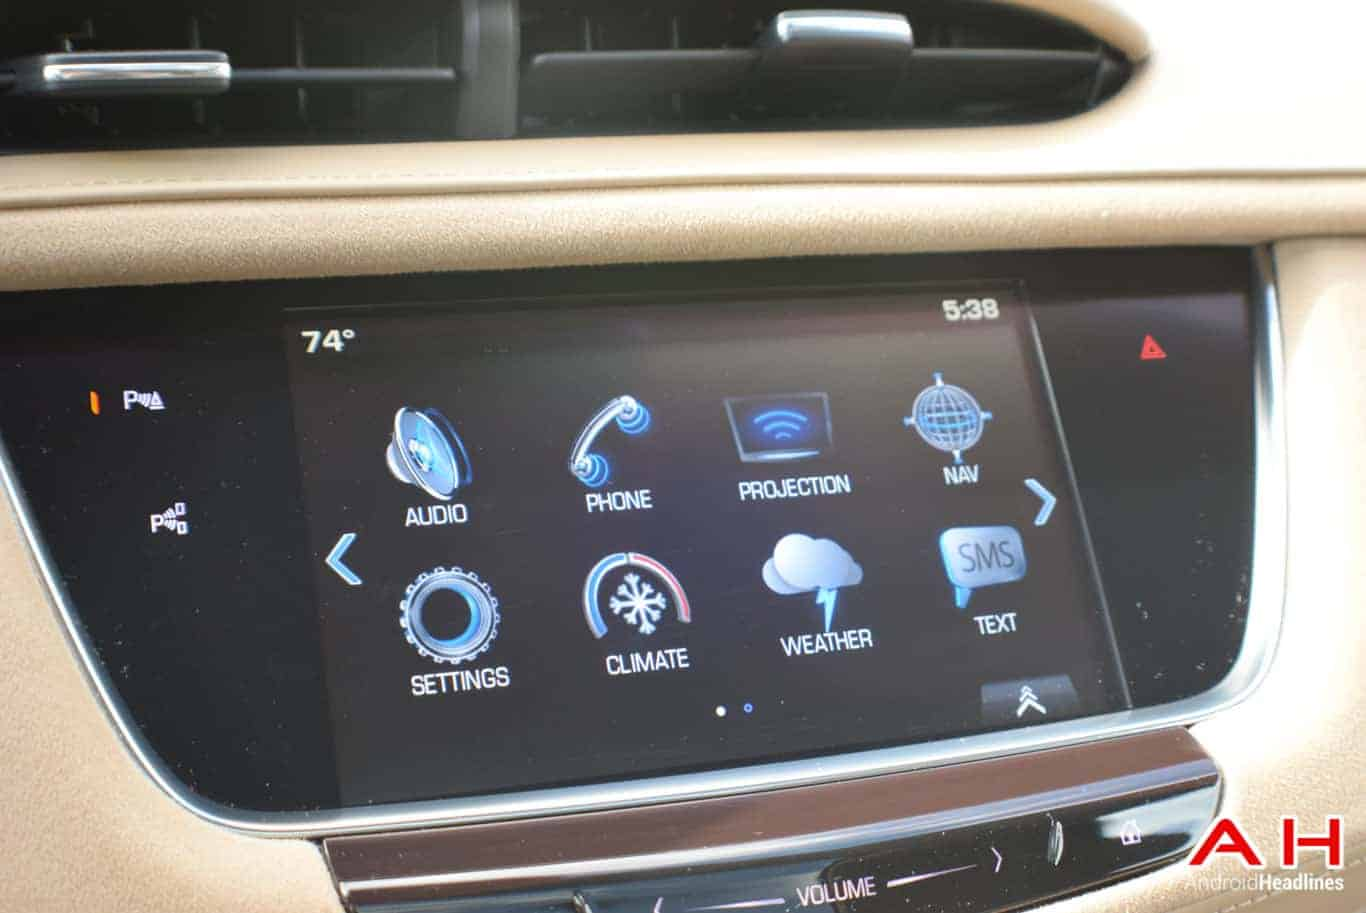 2017 Cadillac XT5 Android Auto Review AM AH 13